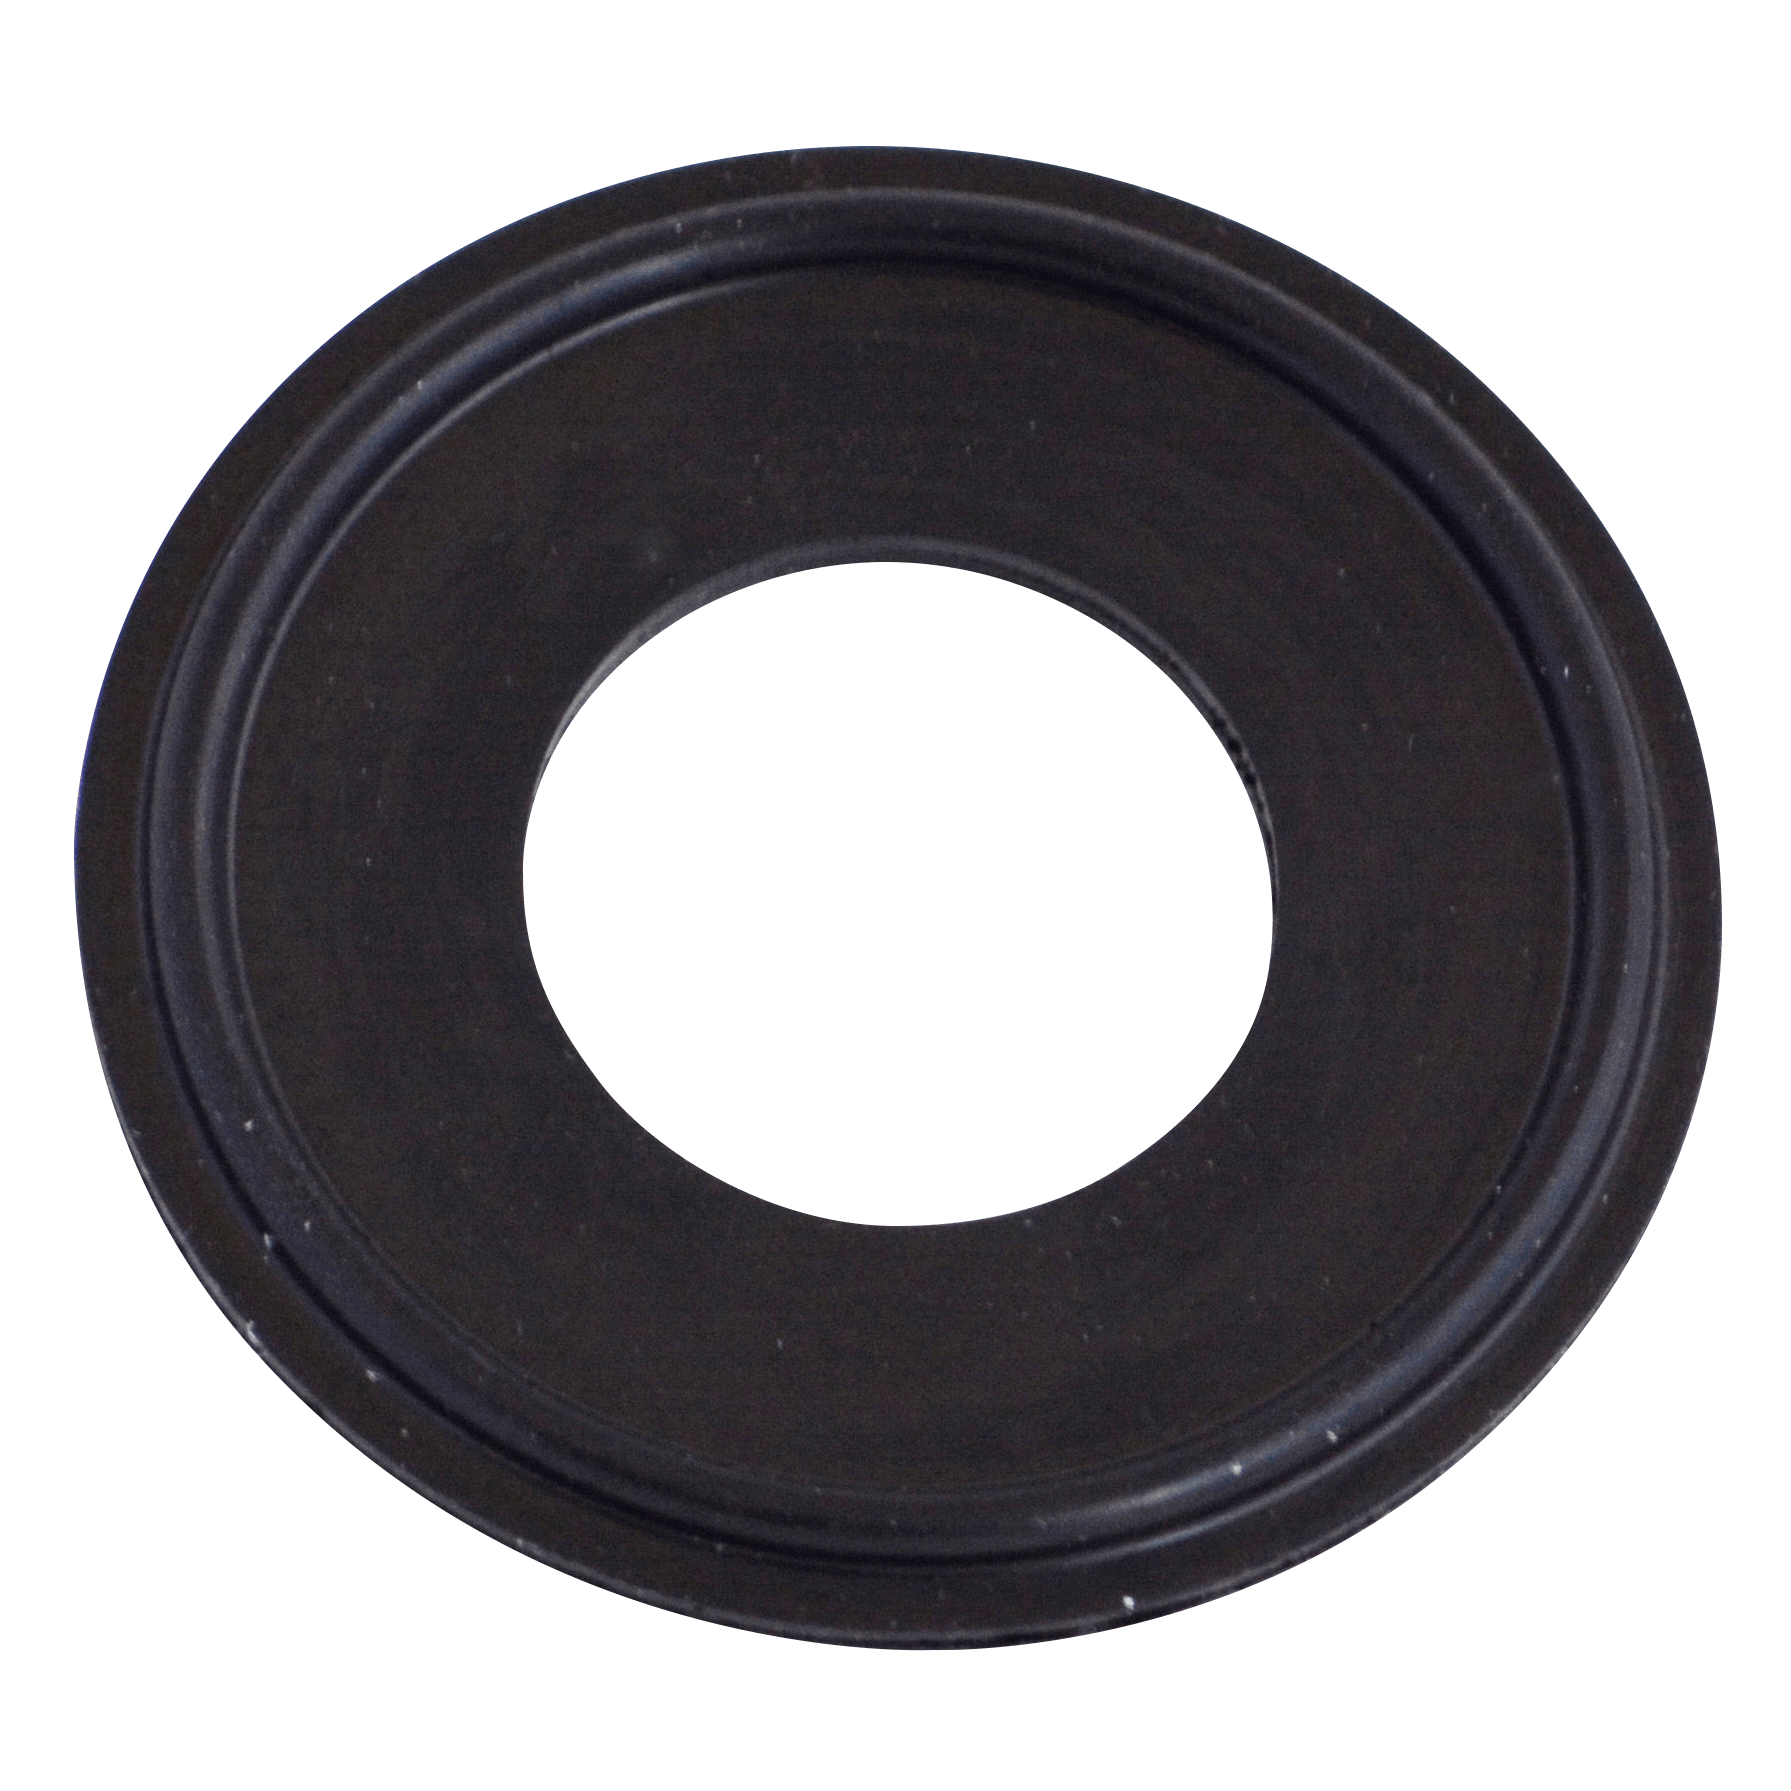 O-ring Clamp Gasket FDA Compliant